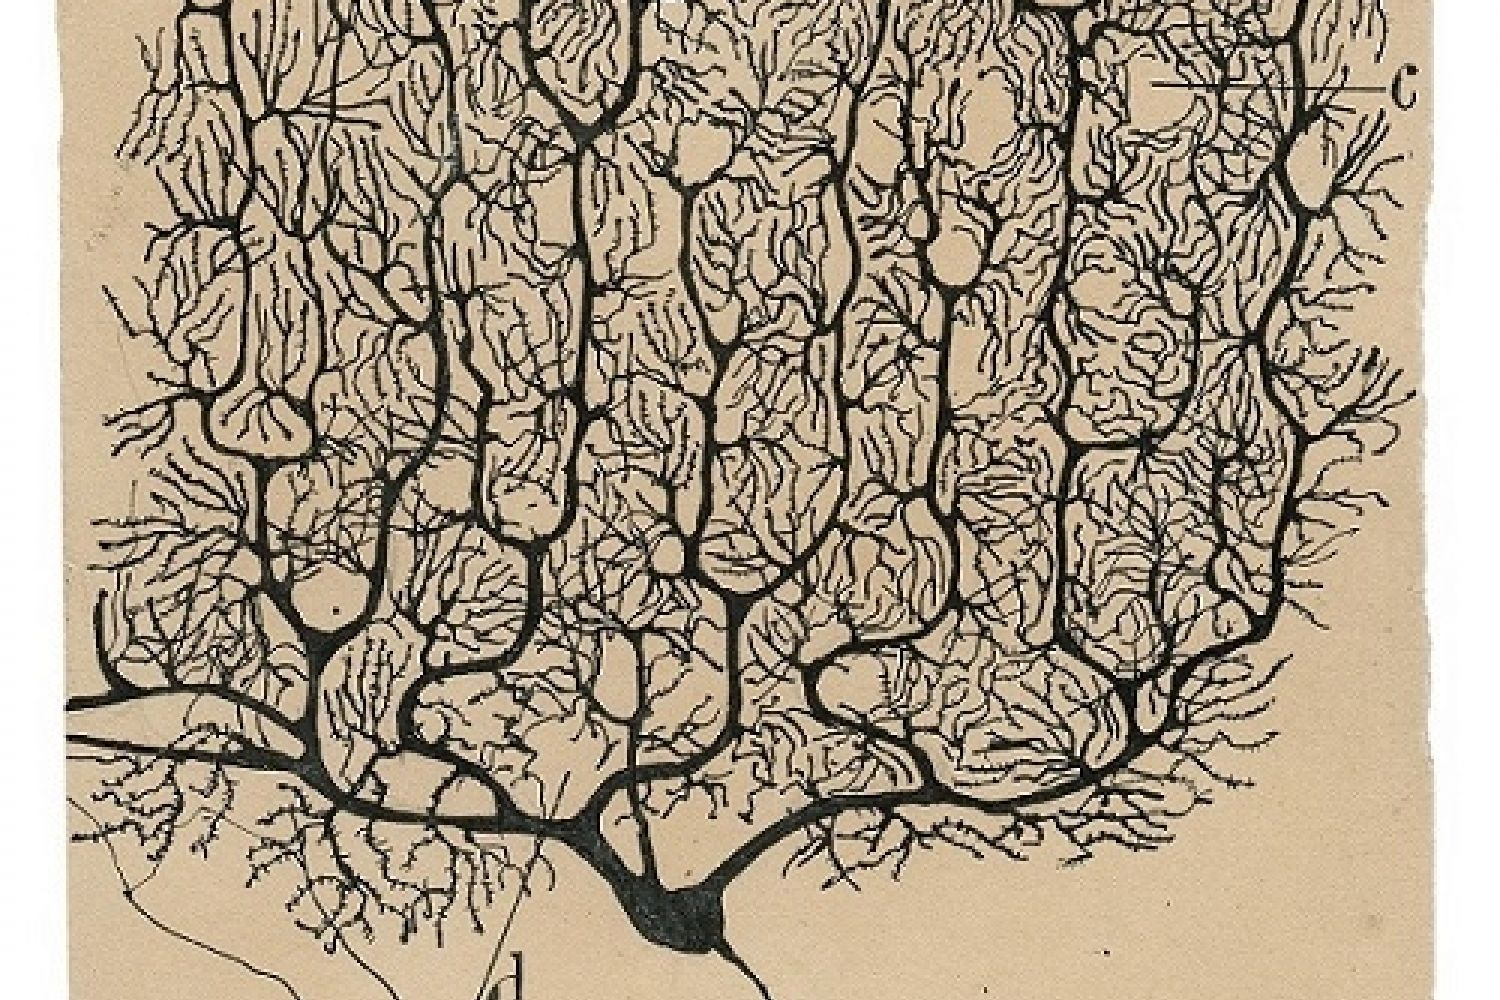 Neuroplasticity As Seen by Neuroscience Pioneer Santiago Ramón Y Cajal 100 Years Ago